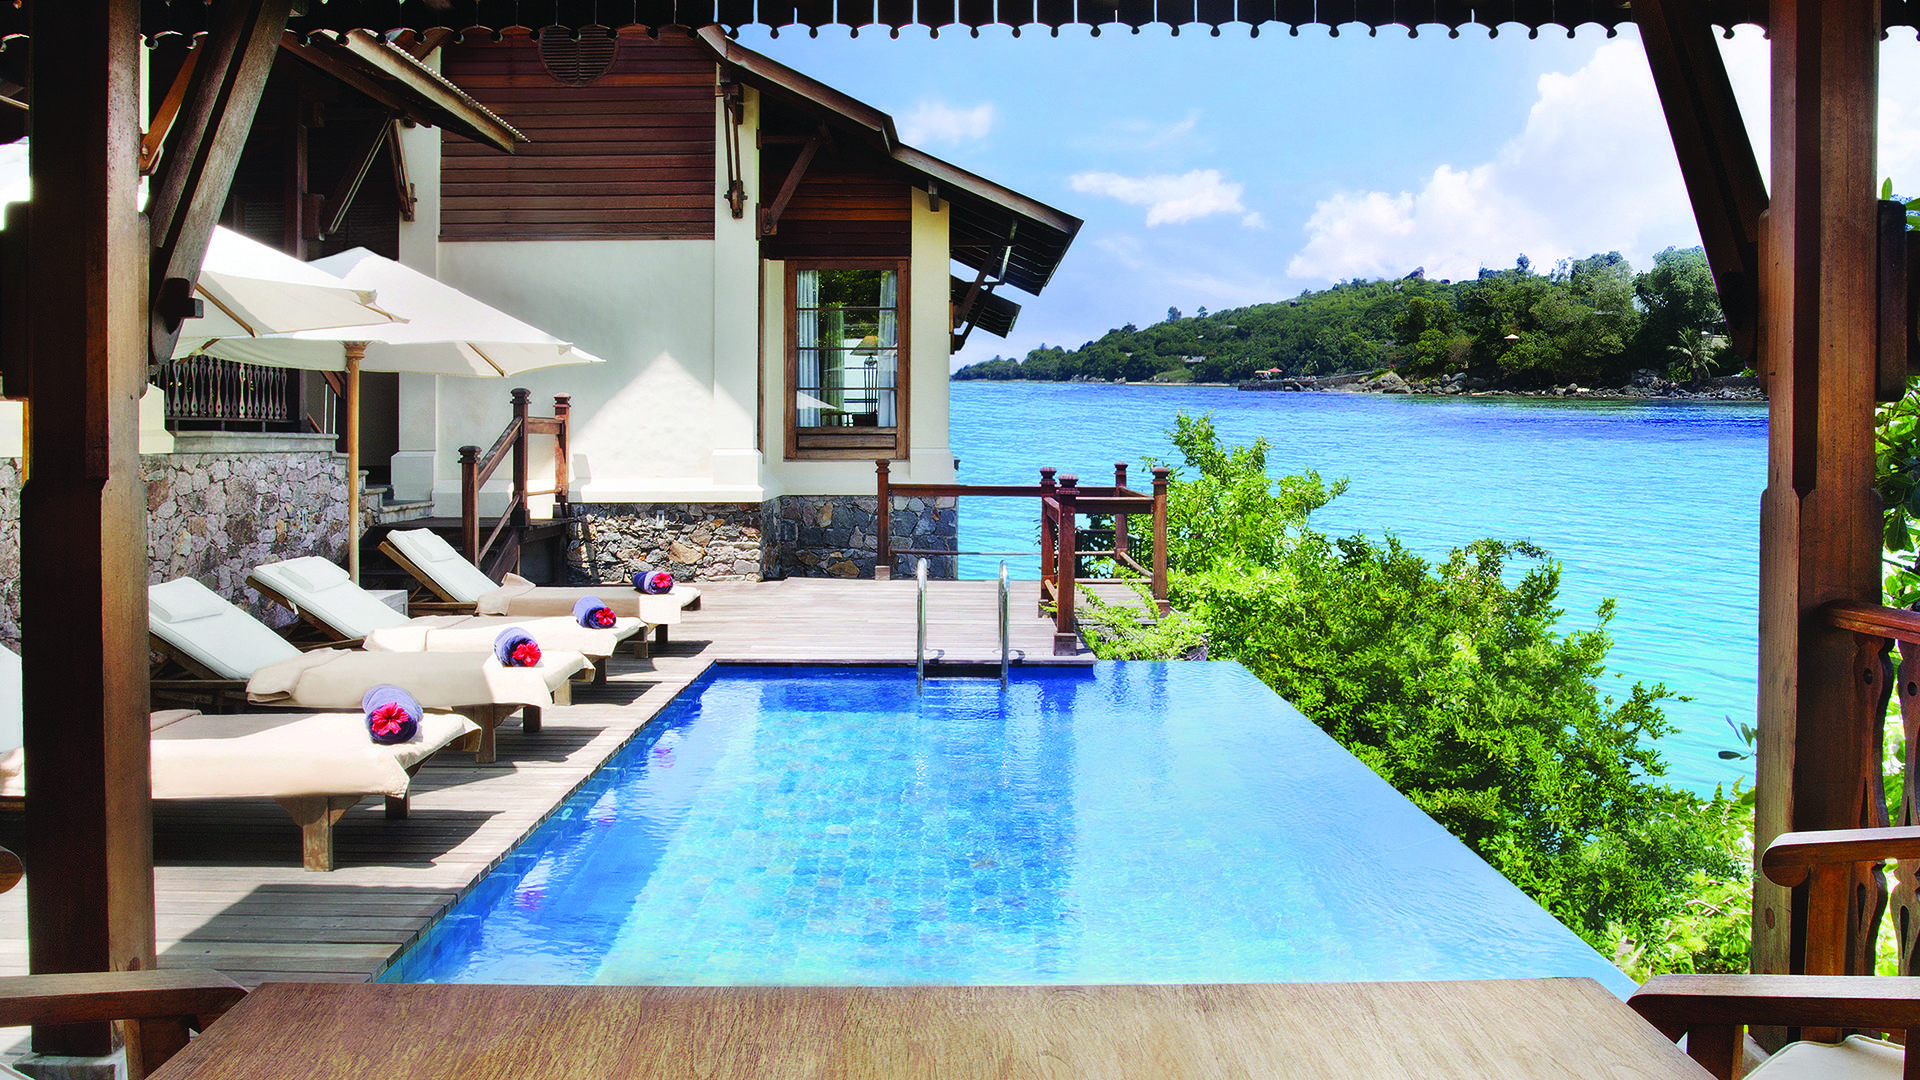 JA verzaubert der Insel Resort_Owner Signature Pool-Deck 1_Gallery